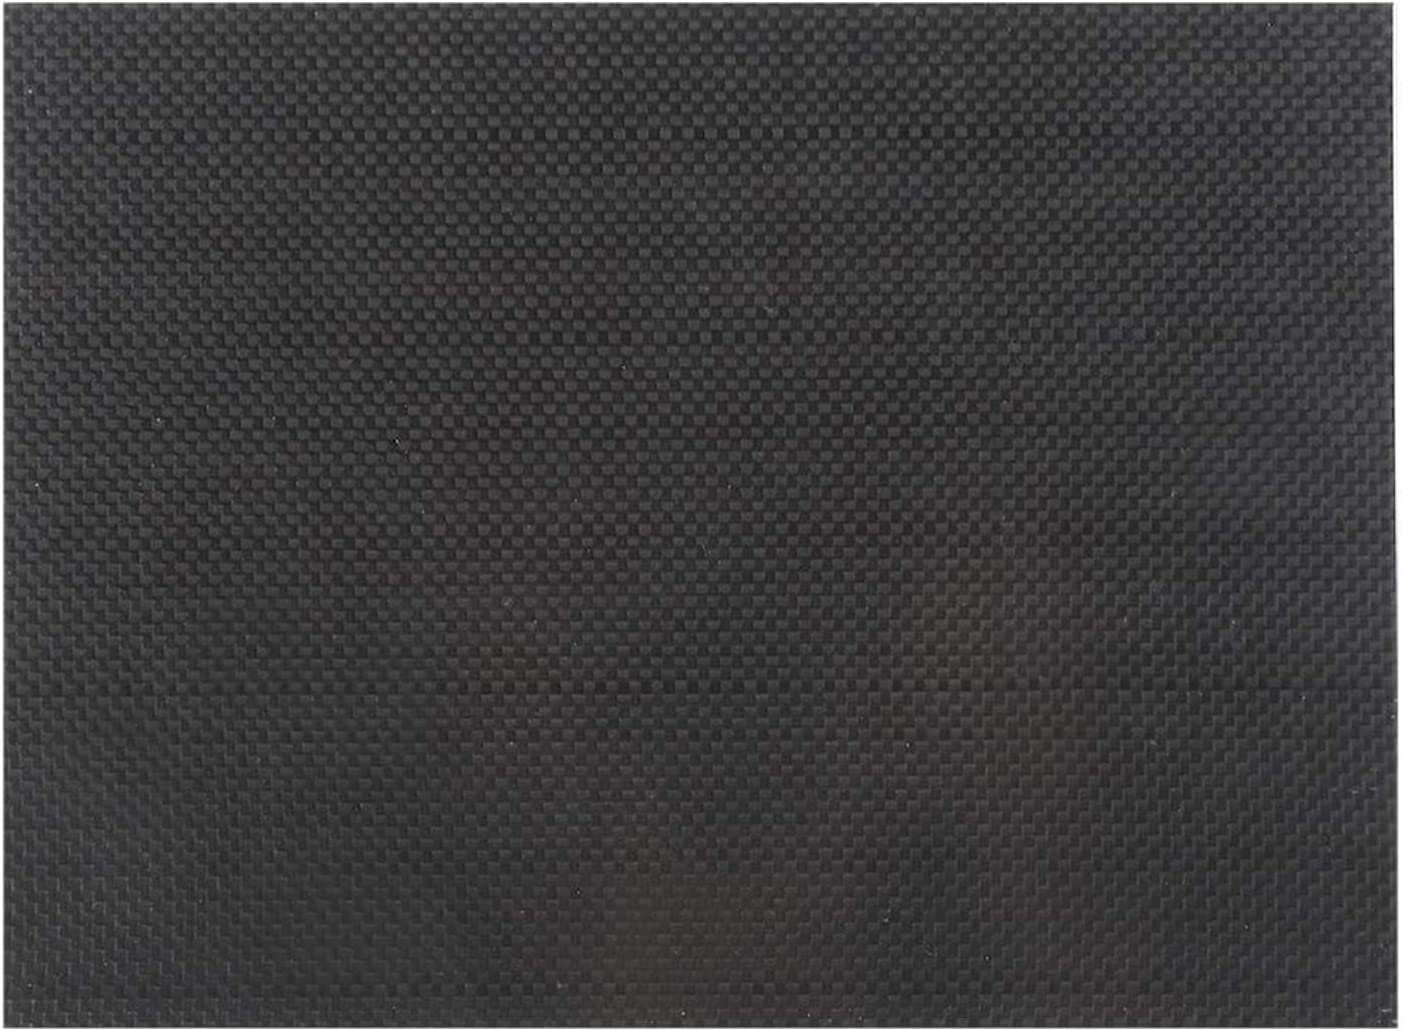 Carbon Fiber Board High Quality inspection Plate Hardness Indianapolis Mall Twill